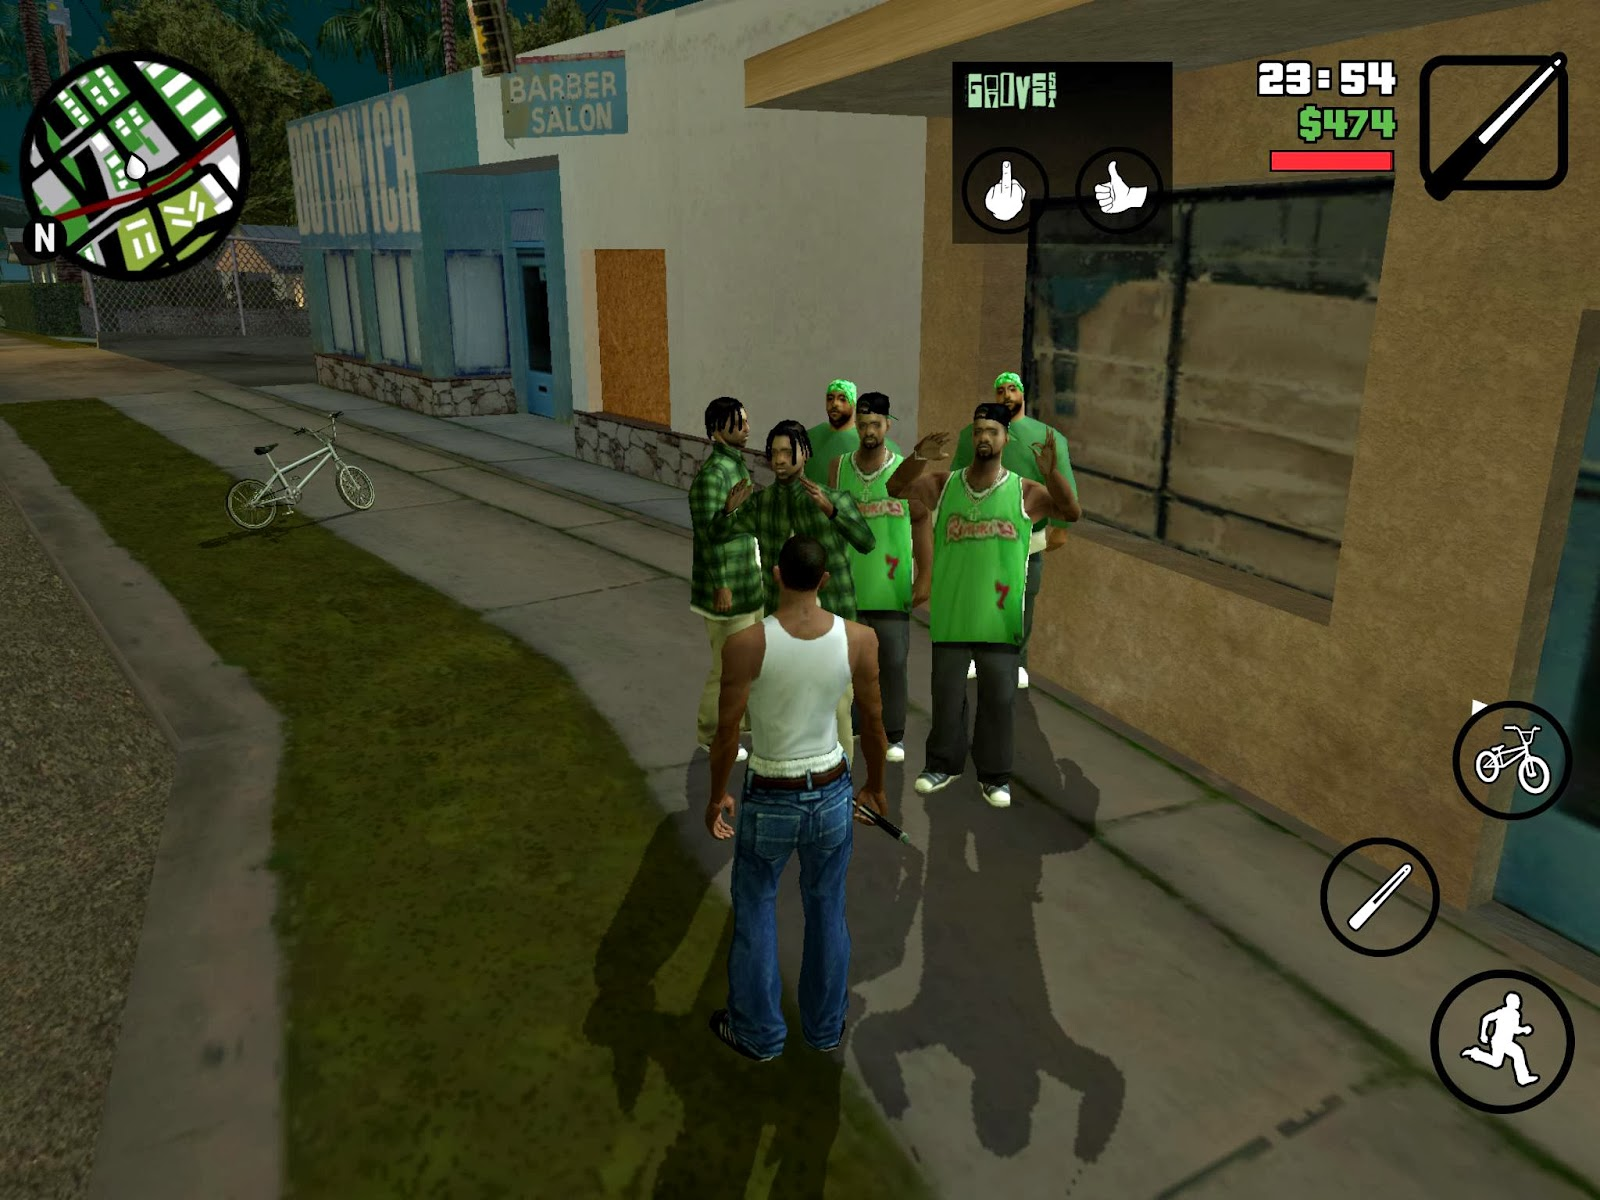 free download gta san andreas for pc apk